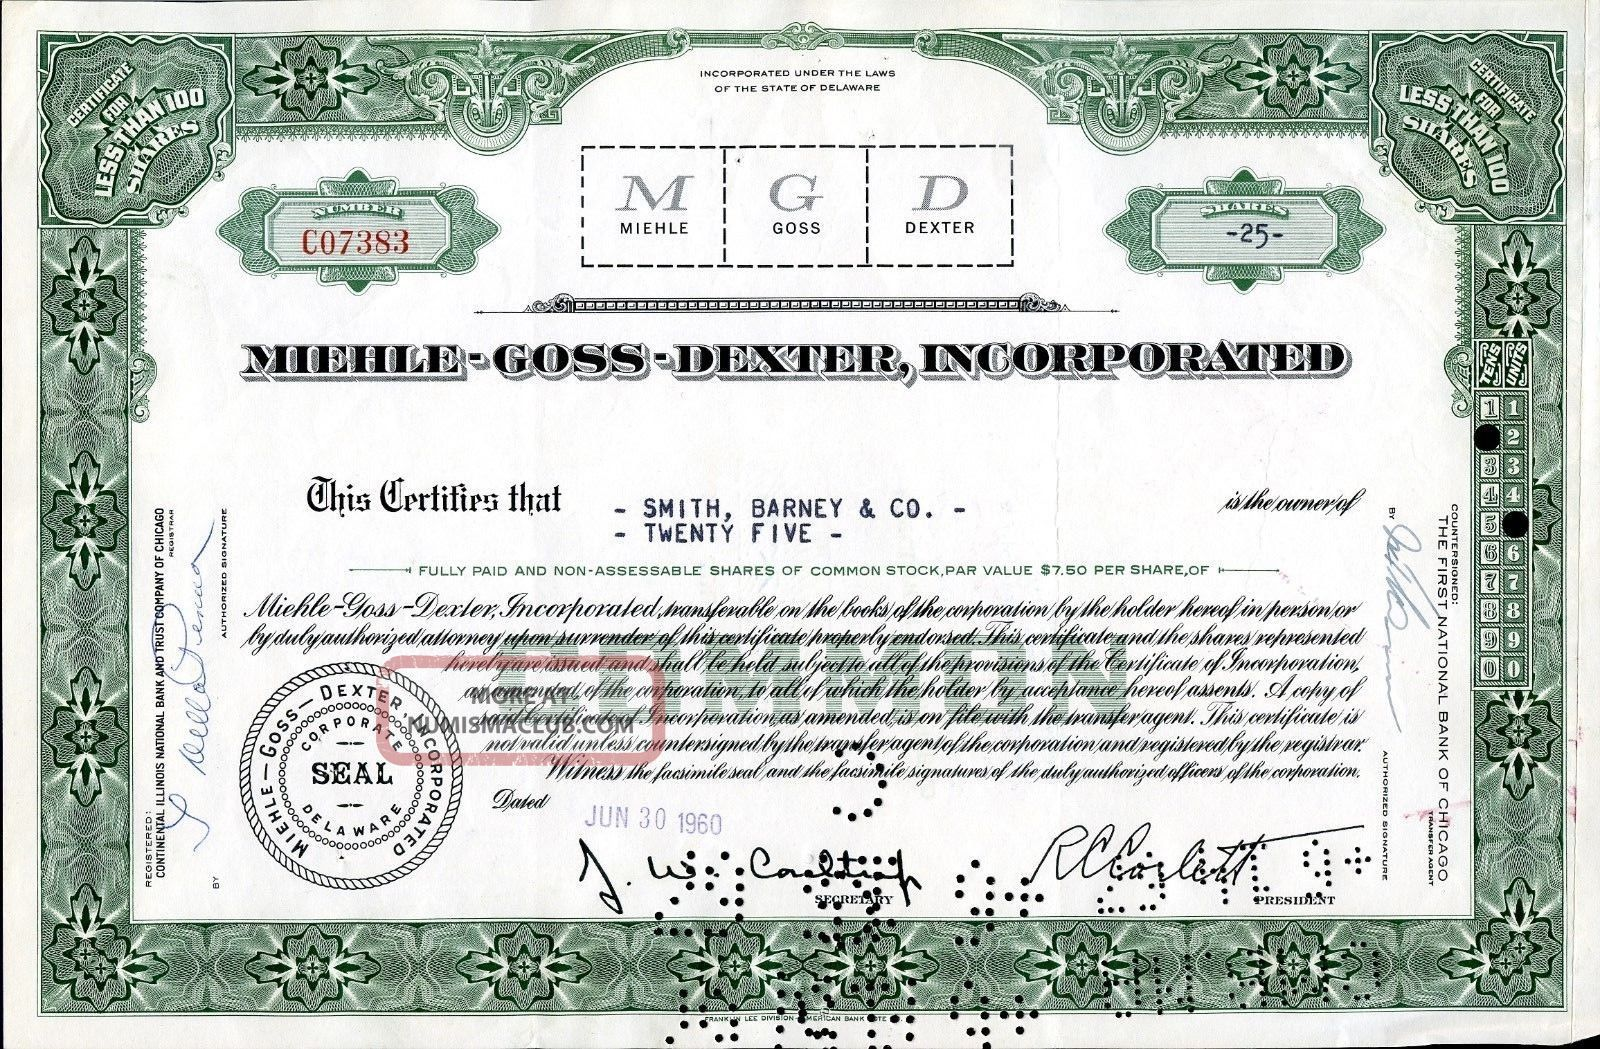 Miehle - Goss - Dexter 25 Shares 1960 U.  S.  Share Stocks & Bonds, Scripophily photo